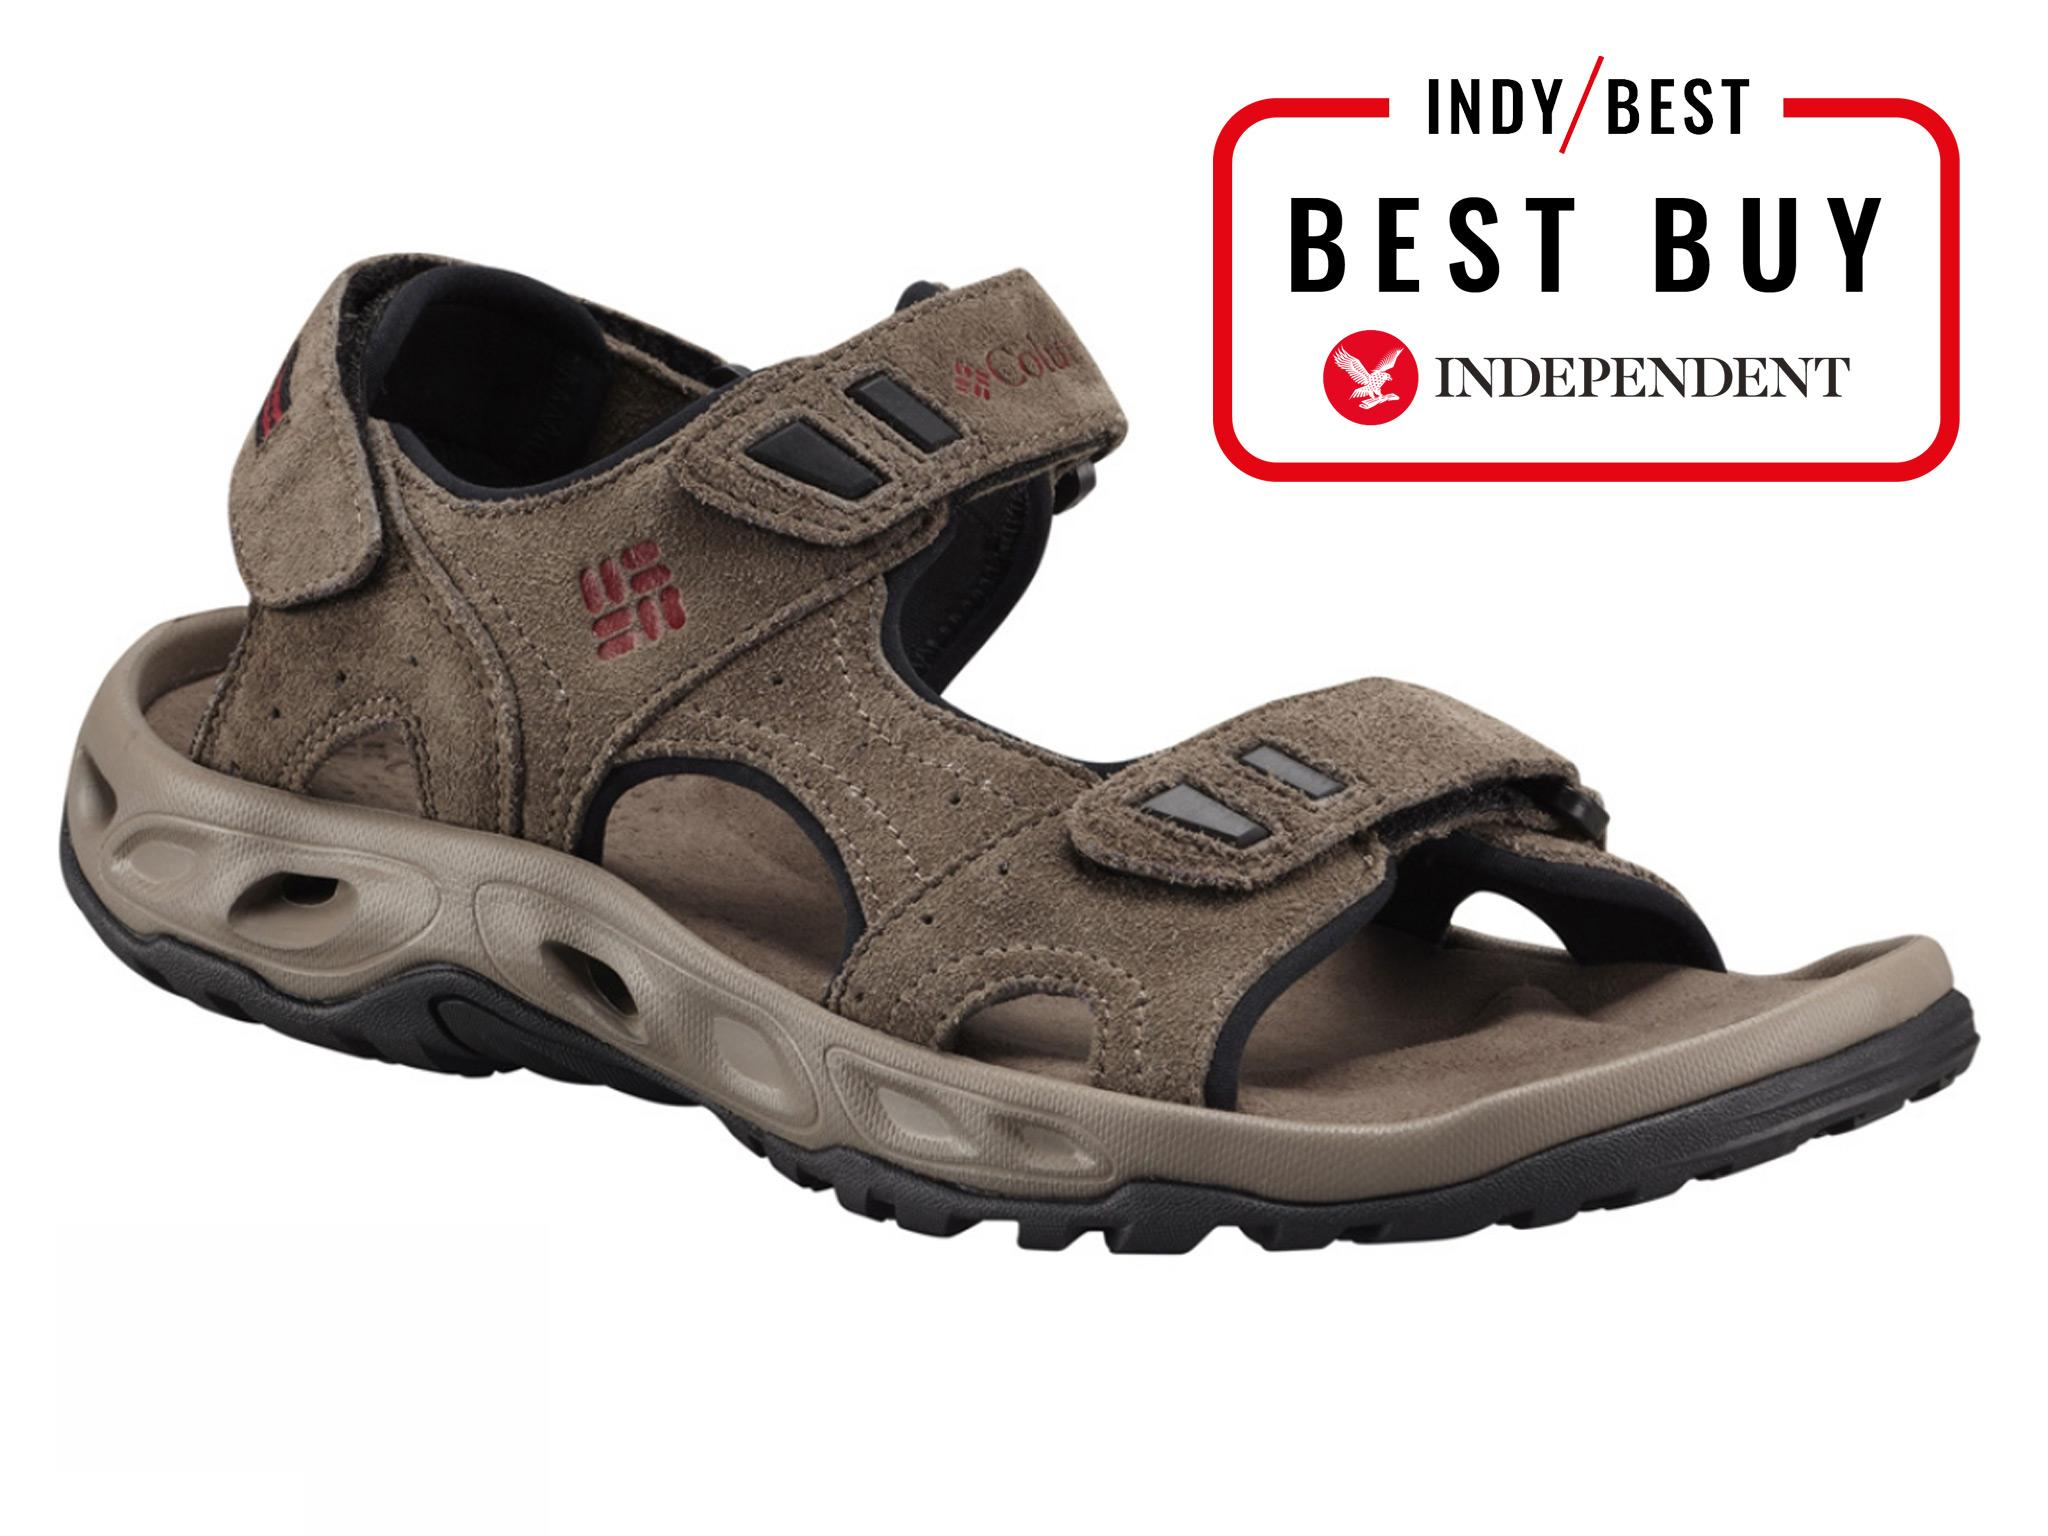 1c0dd28b5 We like the thicker straps on the comfy Ventmeister – they help the sandal  to offer the cushioned support of a trainer with a lot more breathability.